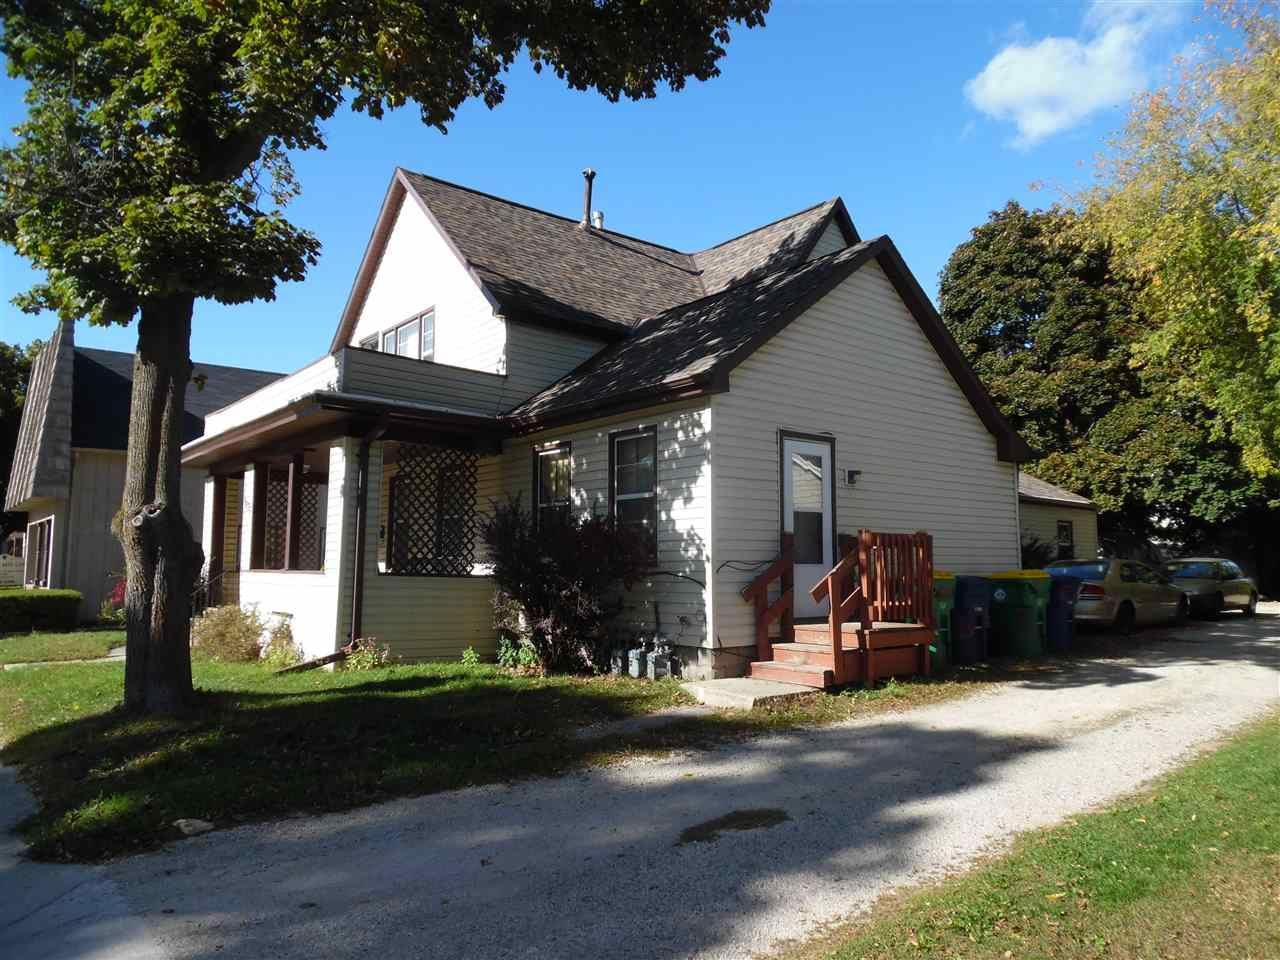 1237 E WALNUT Street, Green Bay, WI 54301 - MLS#: 50232500